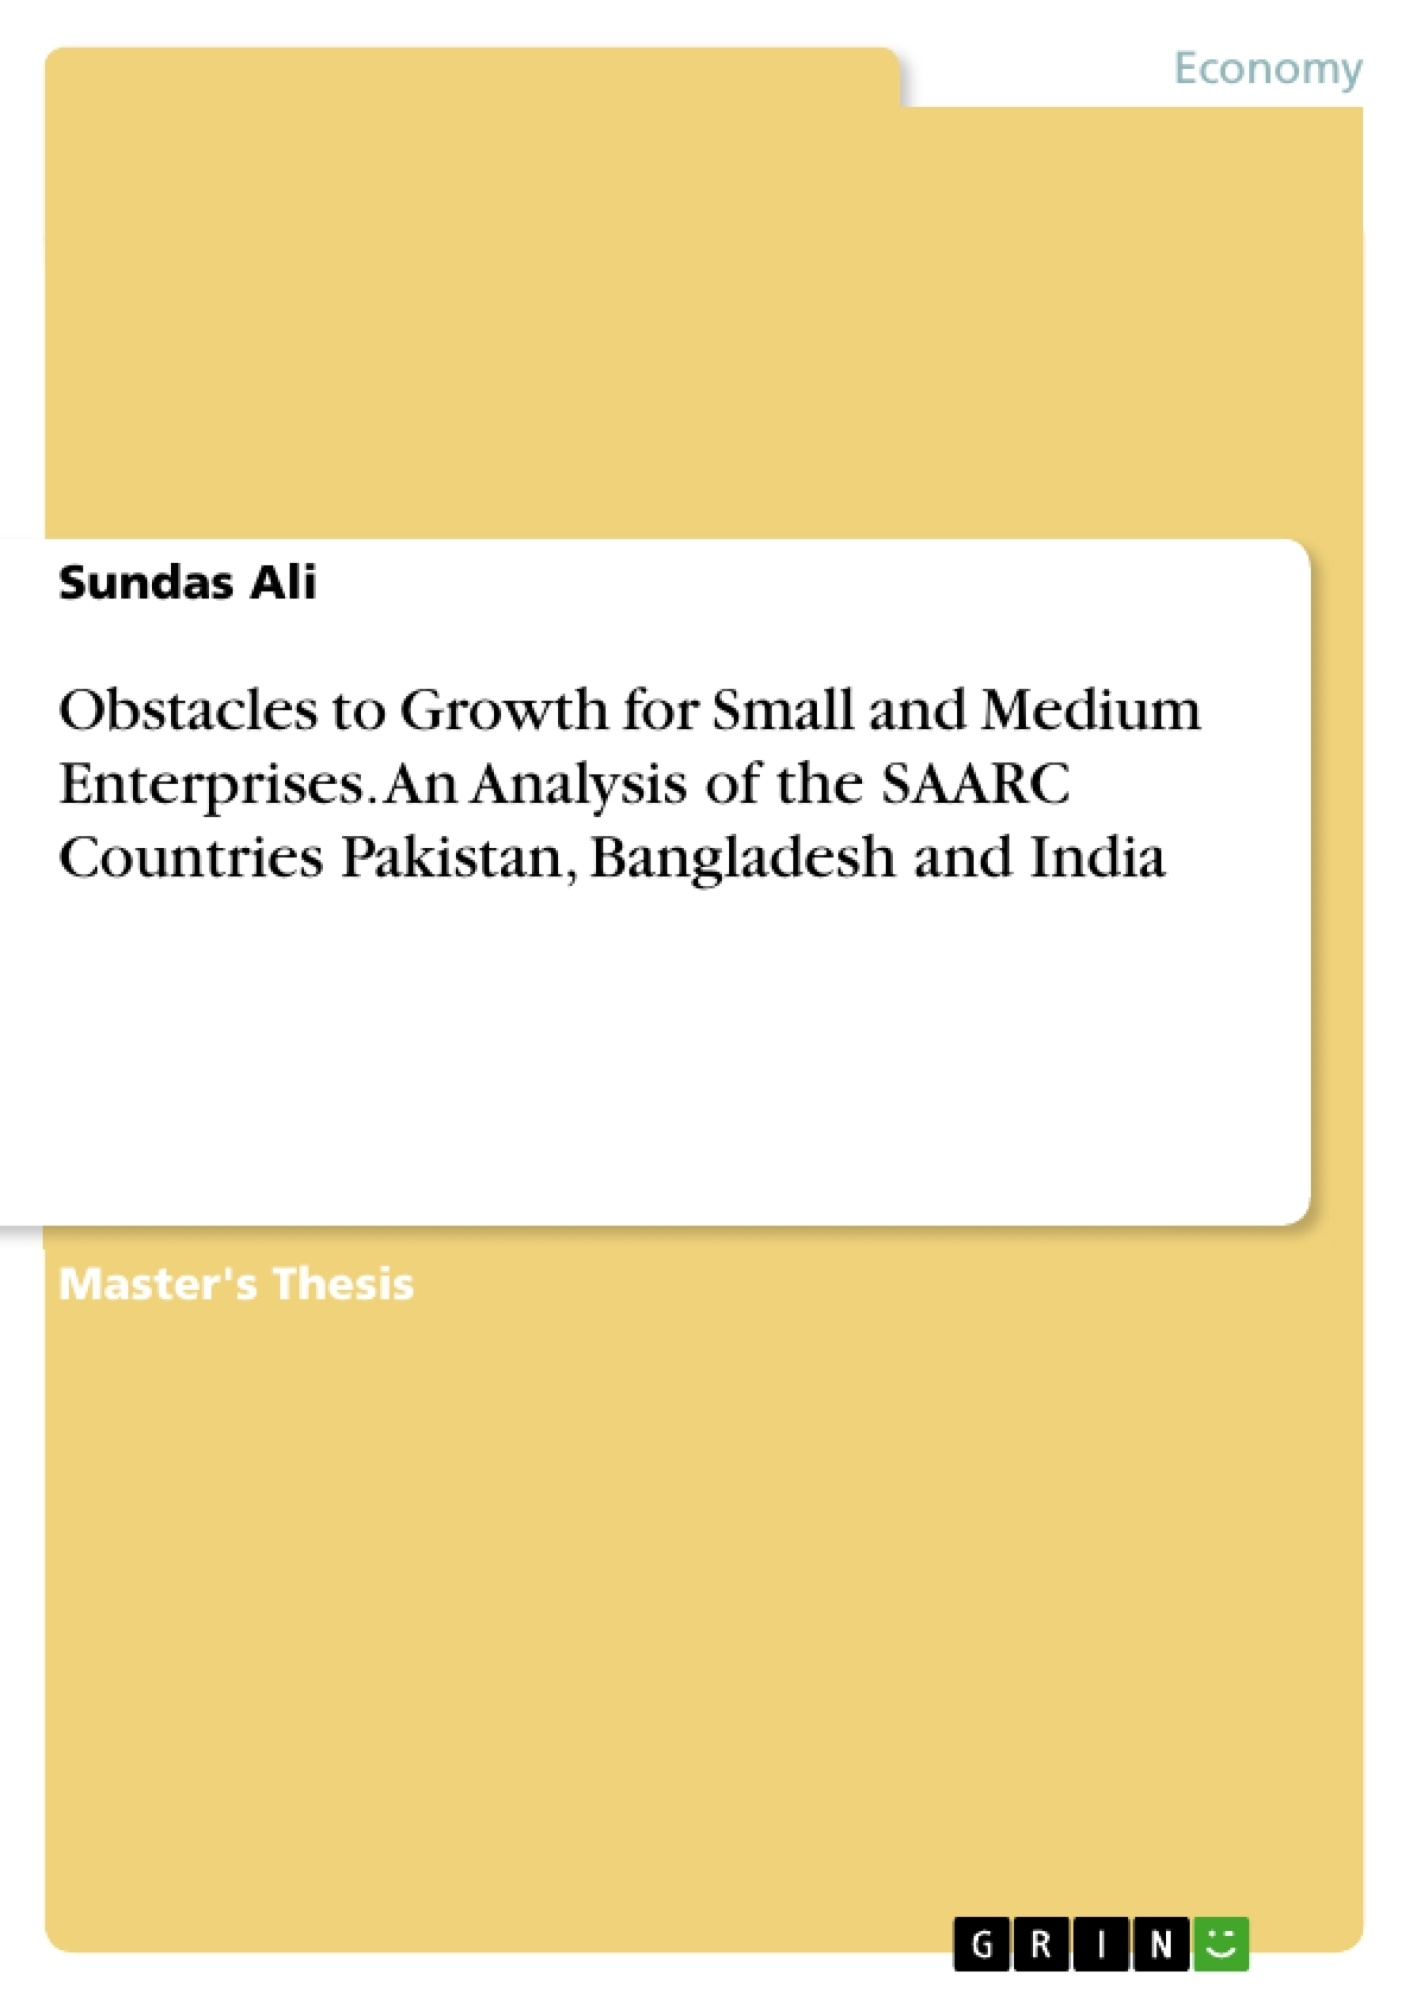 Title: Obstacles to Growth for Small and Medium Enterprises. An Analysis of the SAARC Countries Pakistan, Bangladesh and India